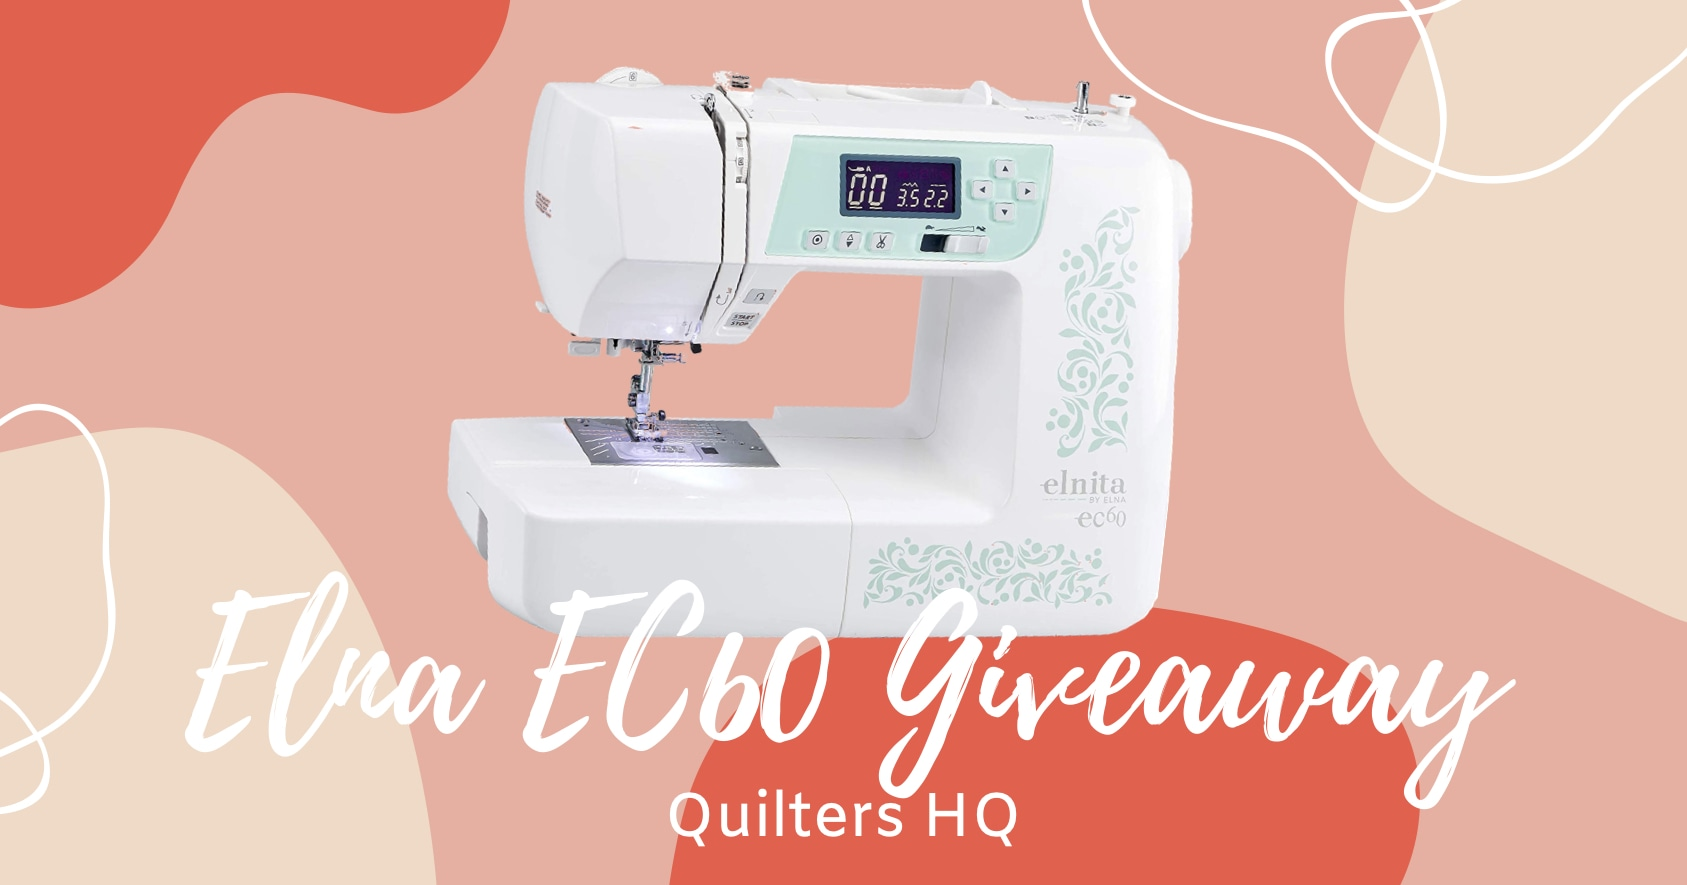 Elna EC60 Giveaway from Quilters HQ Giveaway Image